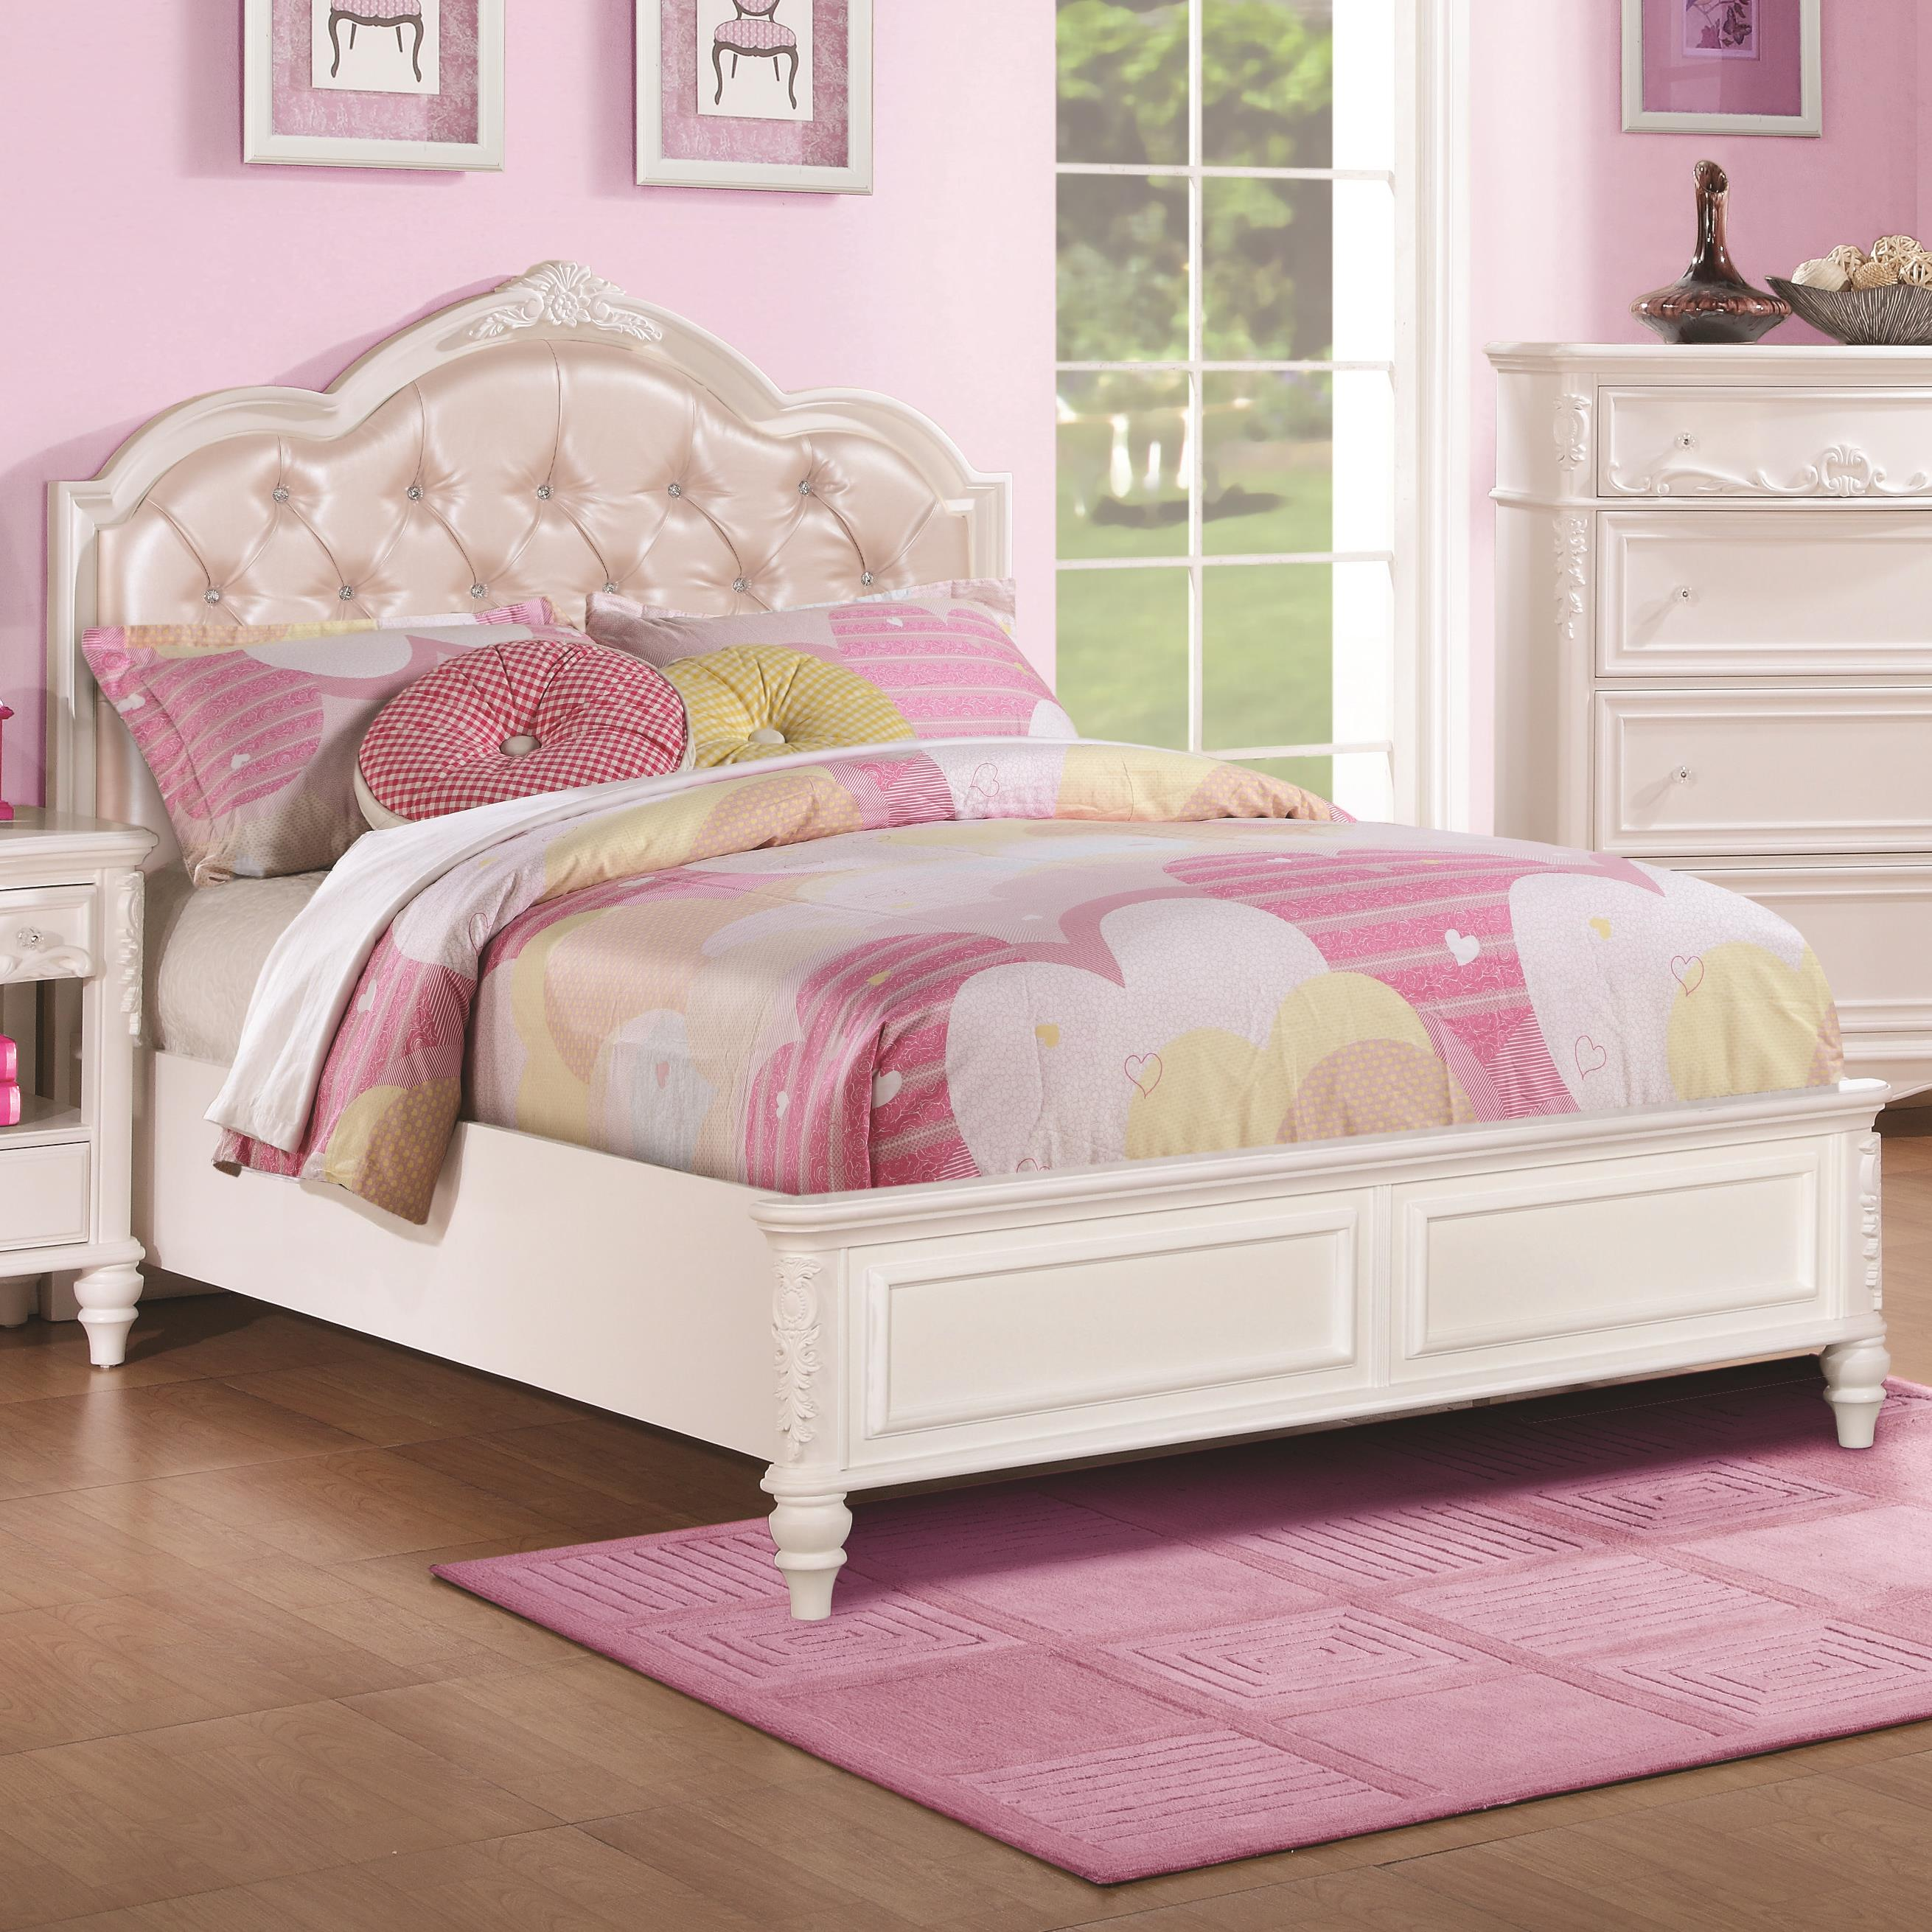 Caroline Full Size Bed by Coaster at Standard Furniture